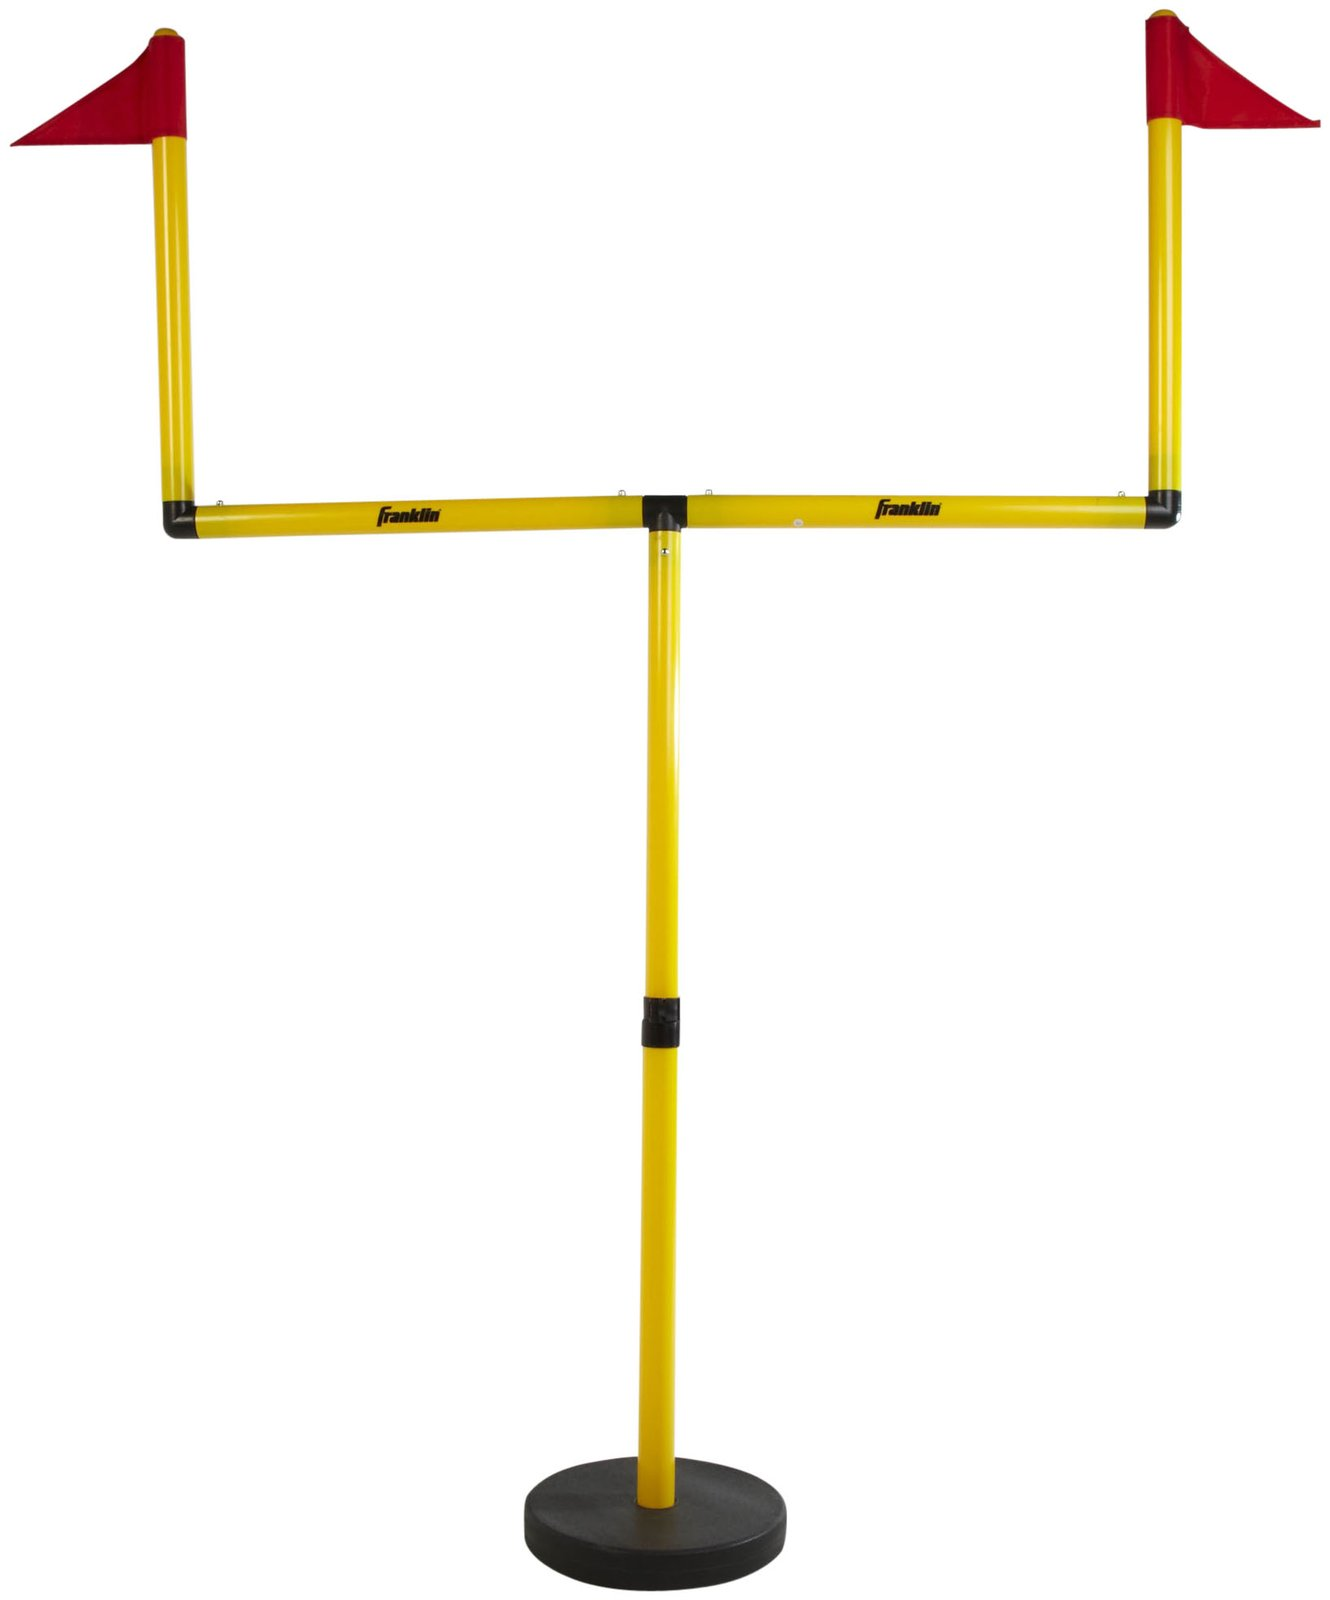 Football Goal Post Pictures Clipart Best-Football Goal Post Pictures Clipart Best-17